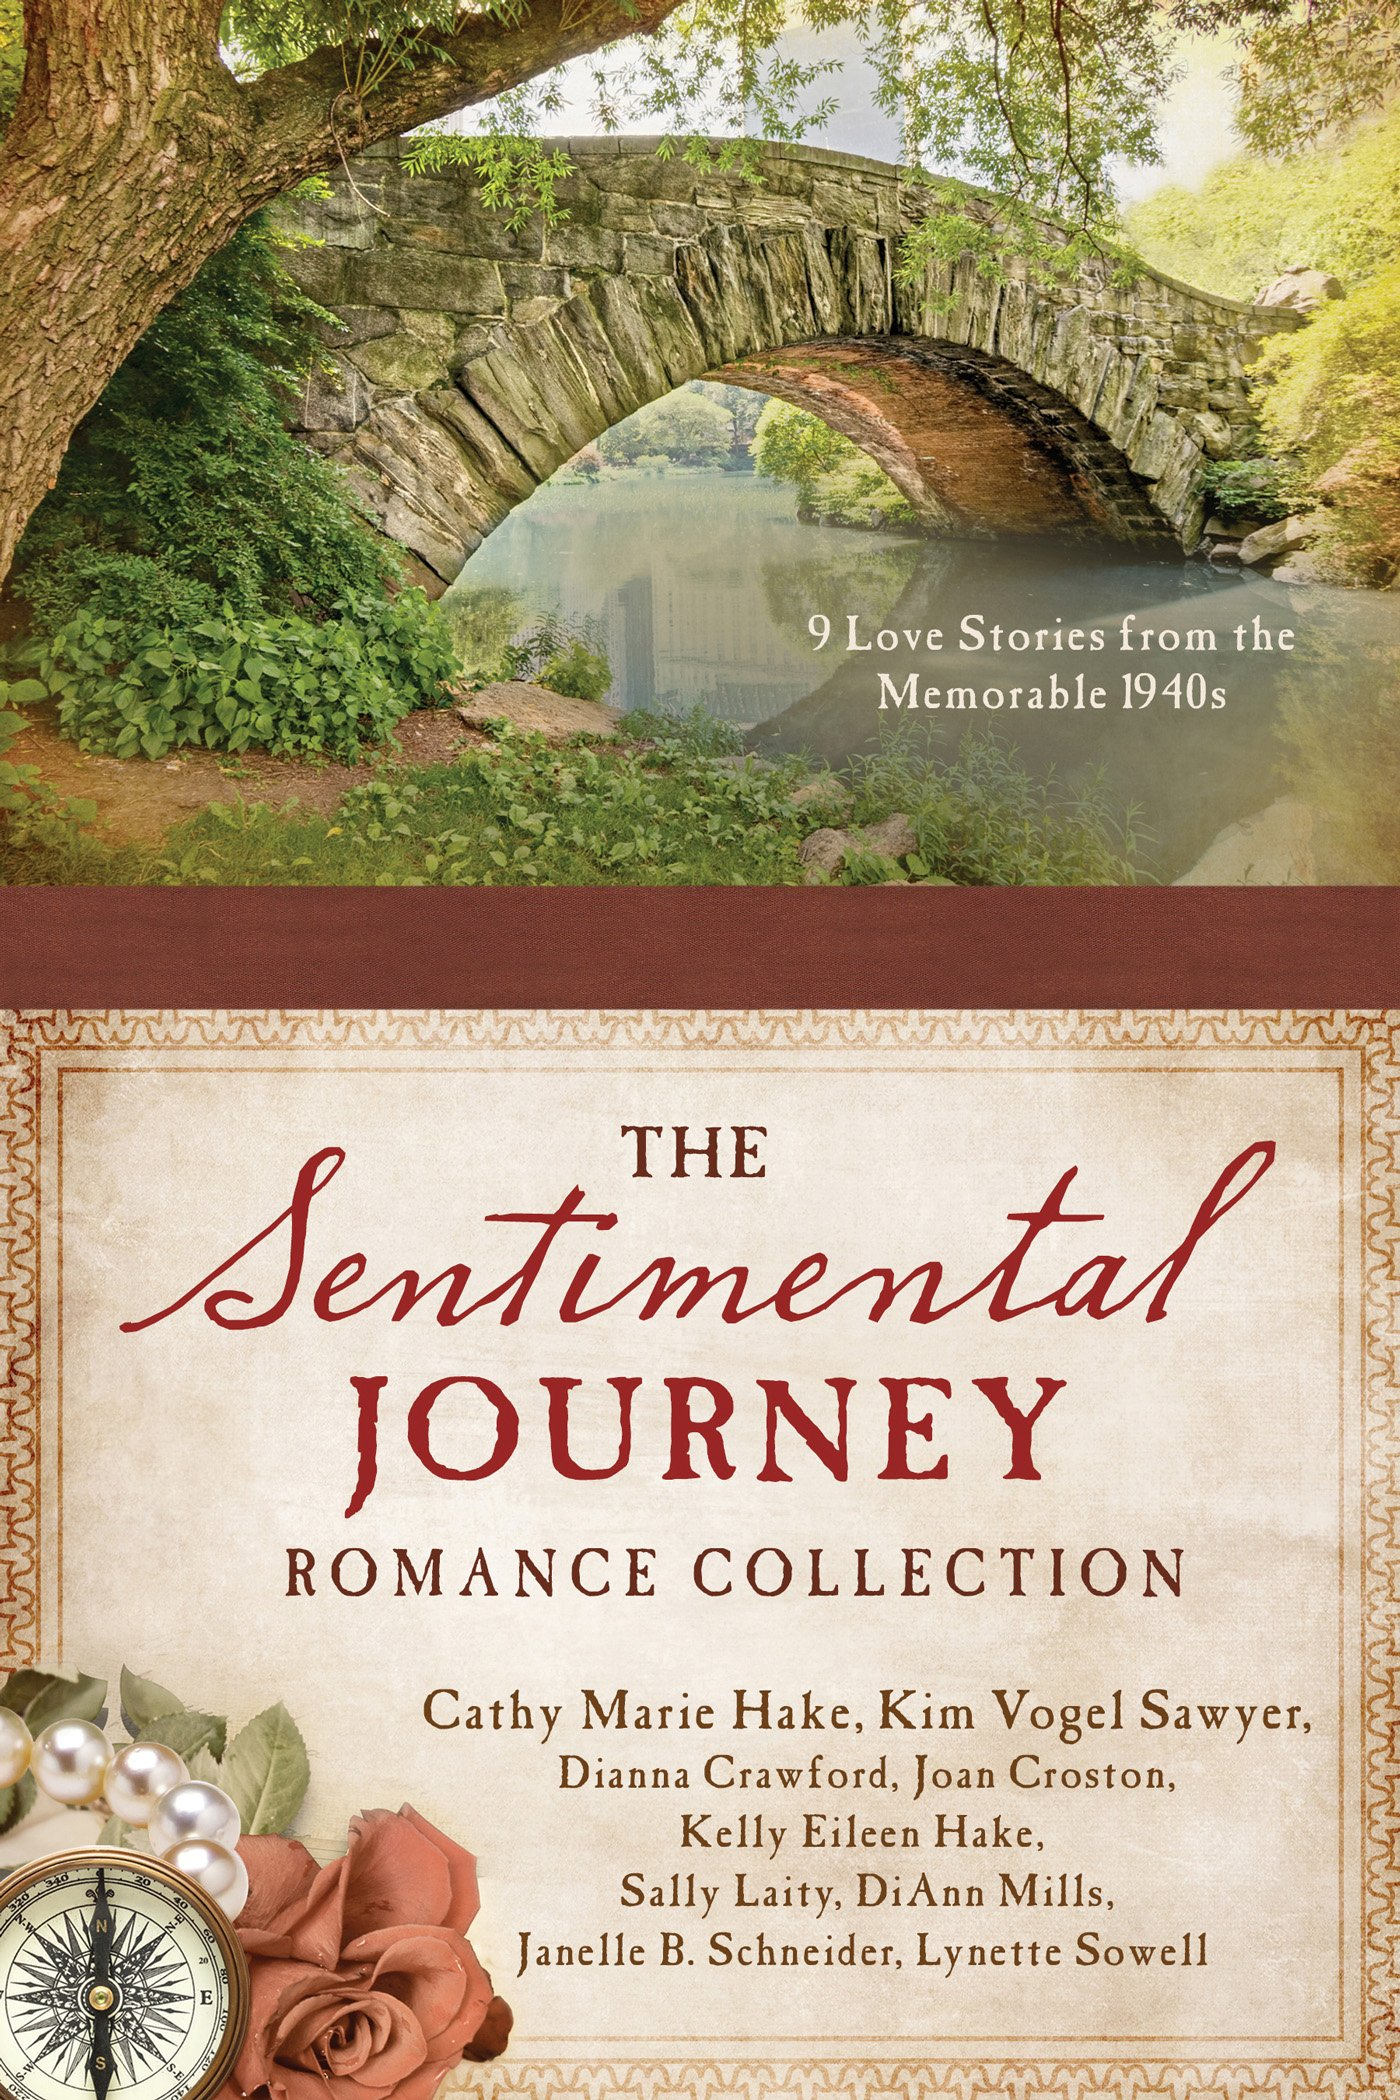 A Sentimental Journey Romance Collection: 9 Love Stories from the Memorable 1940s ebook